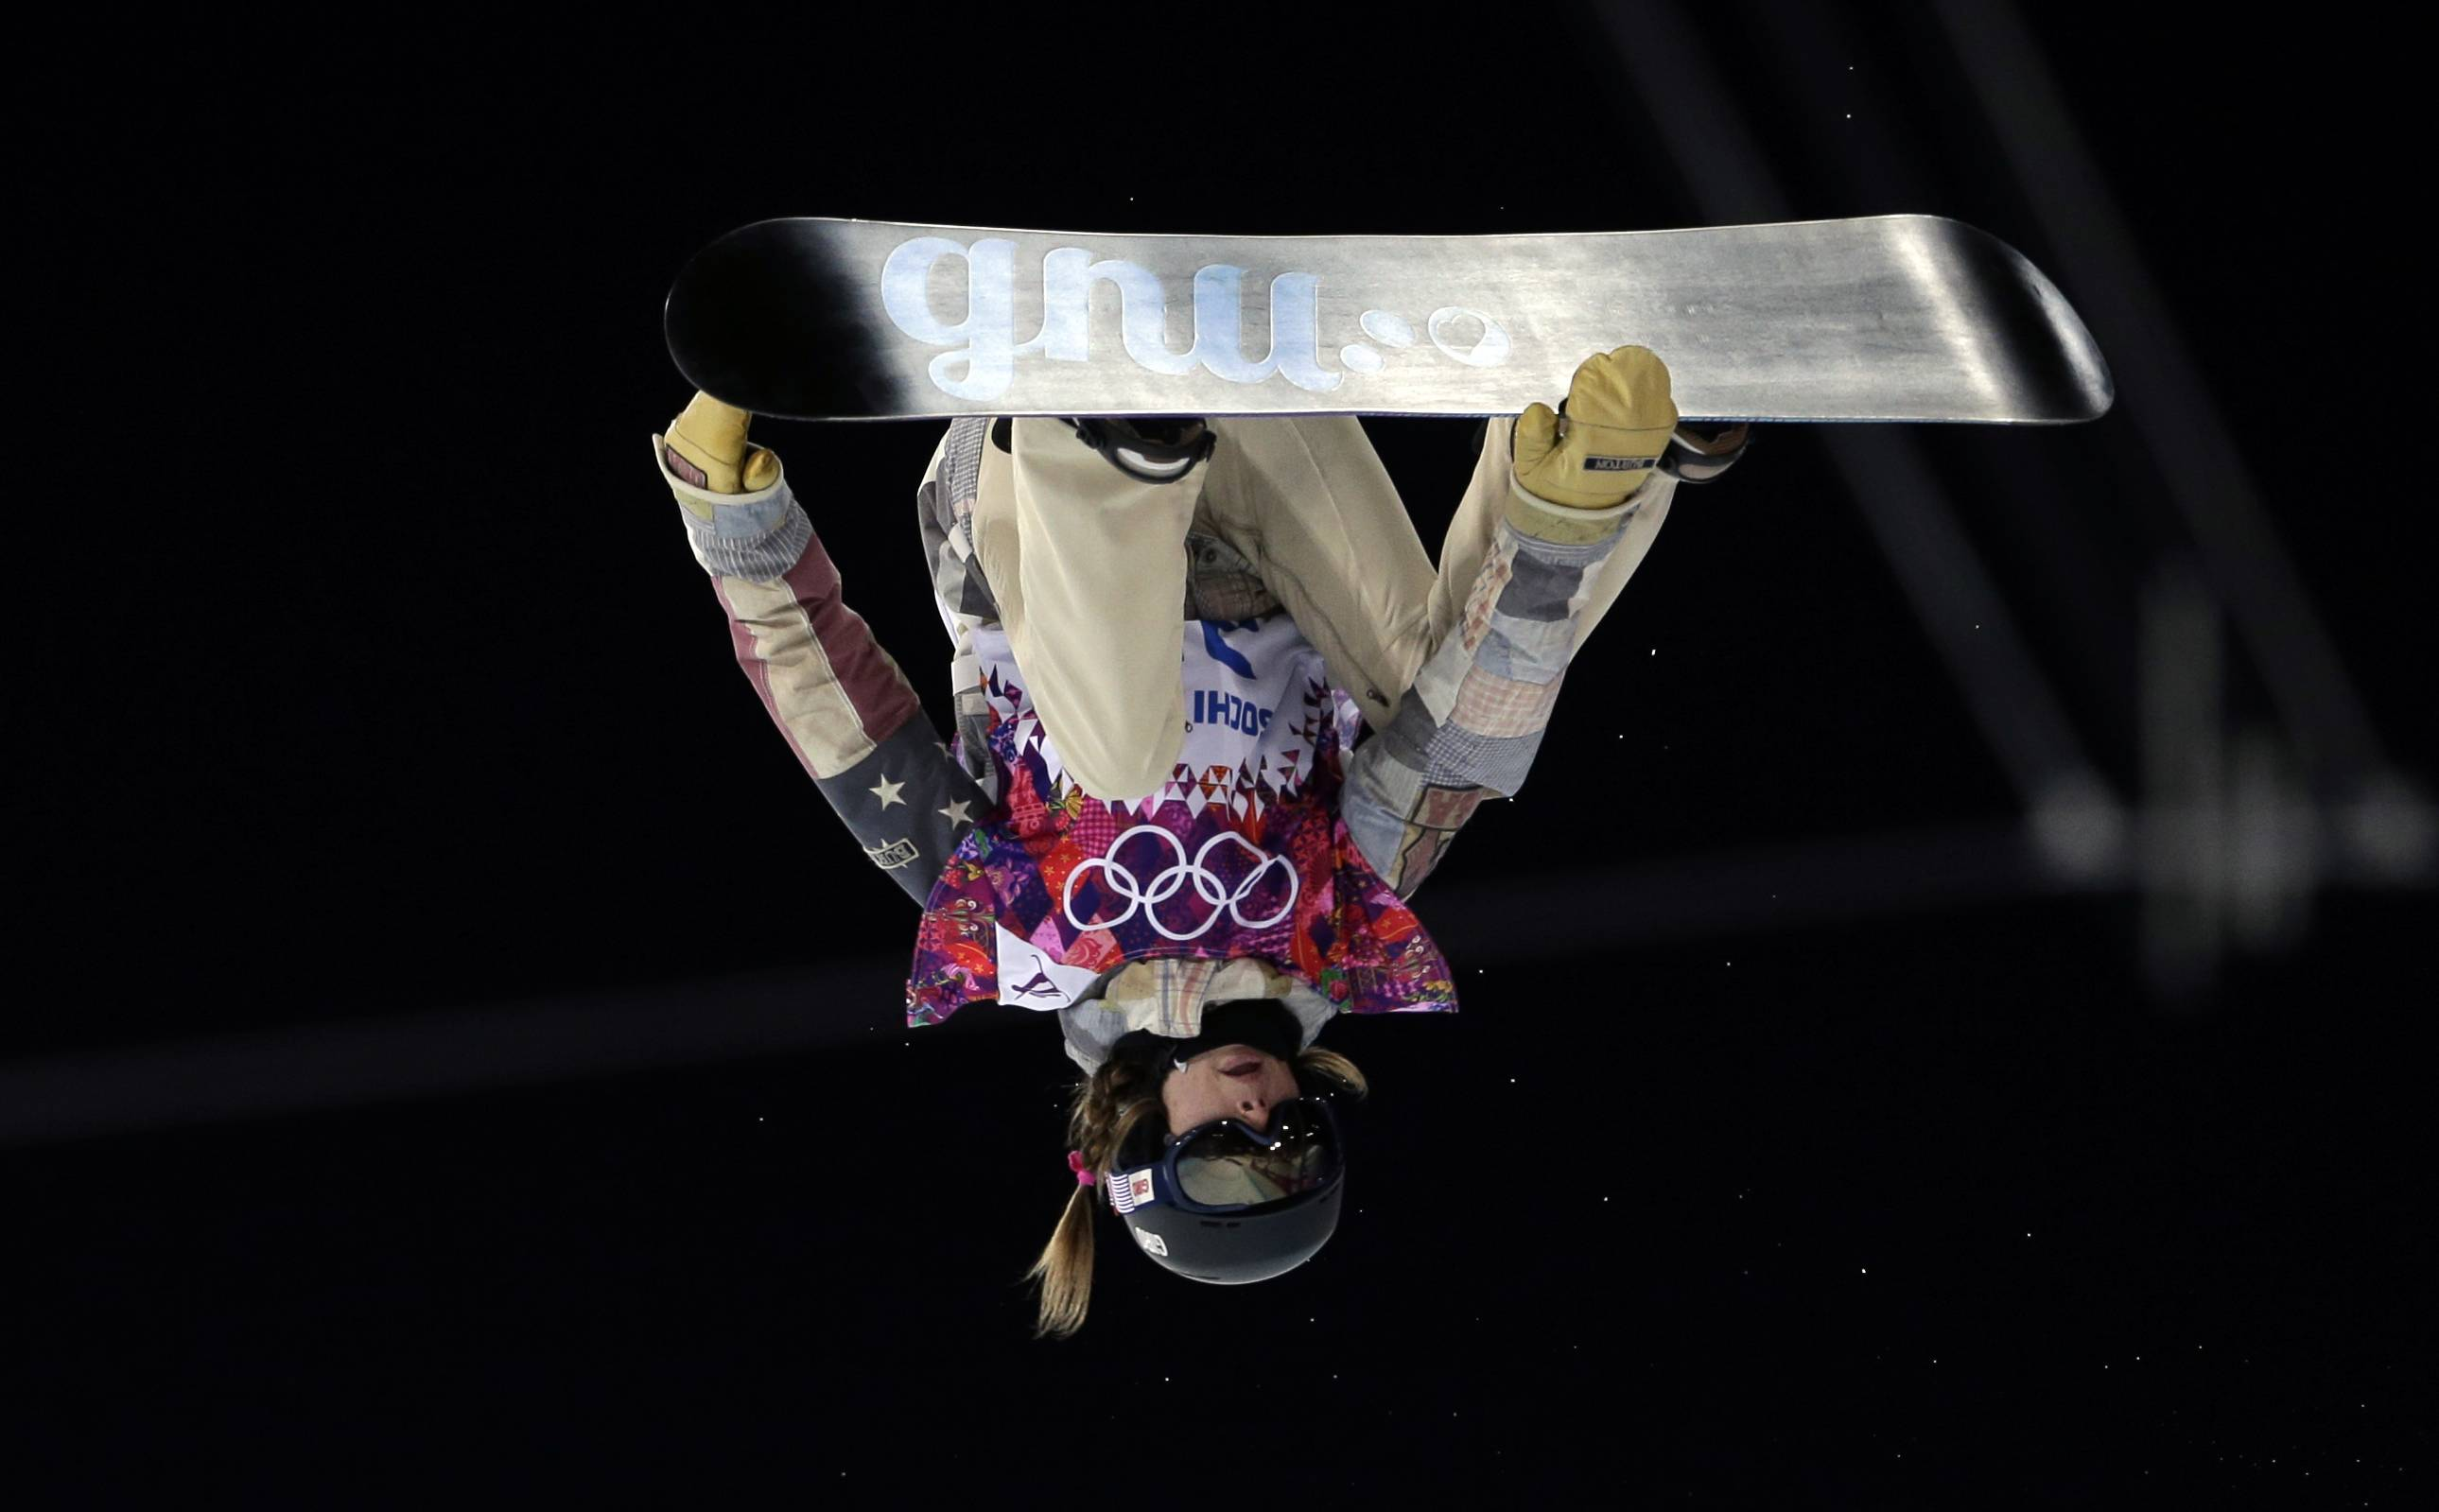 United States' Kaitlyn Farrington competes during the women's snowboard halfpipe final.